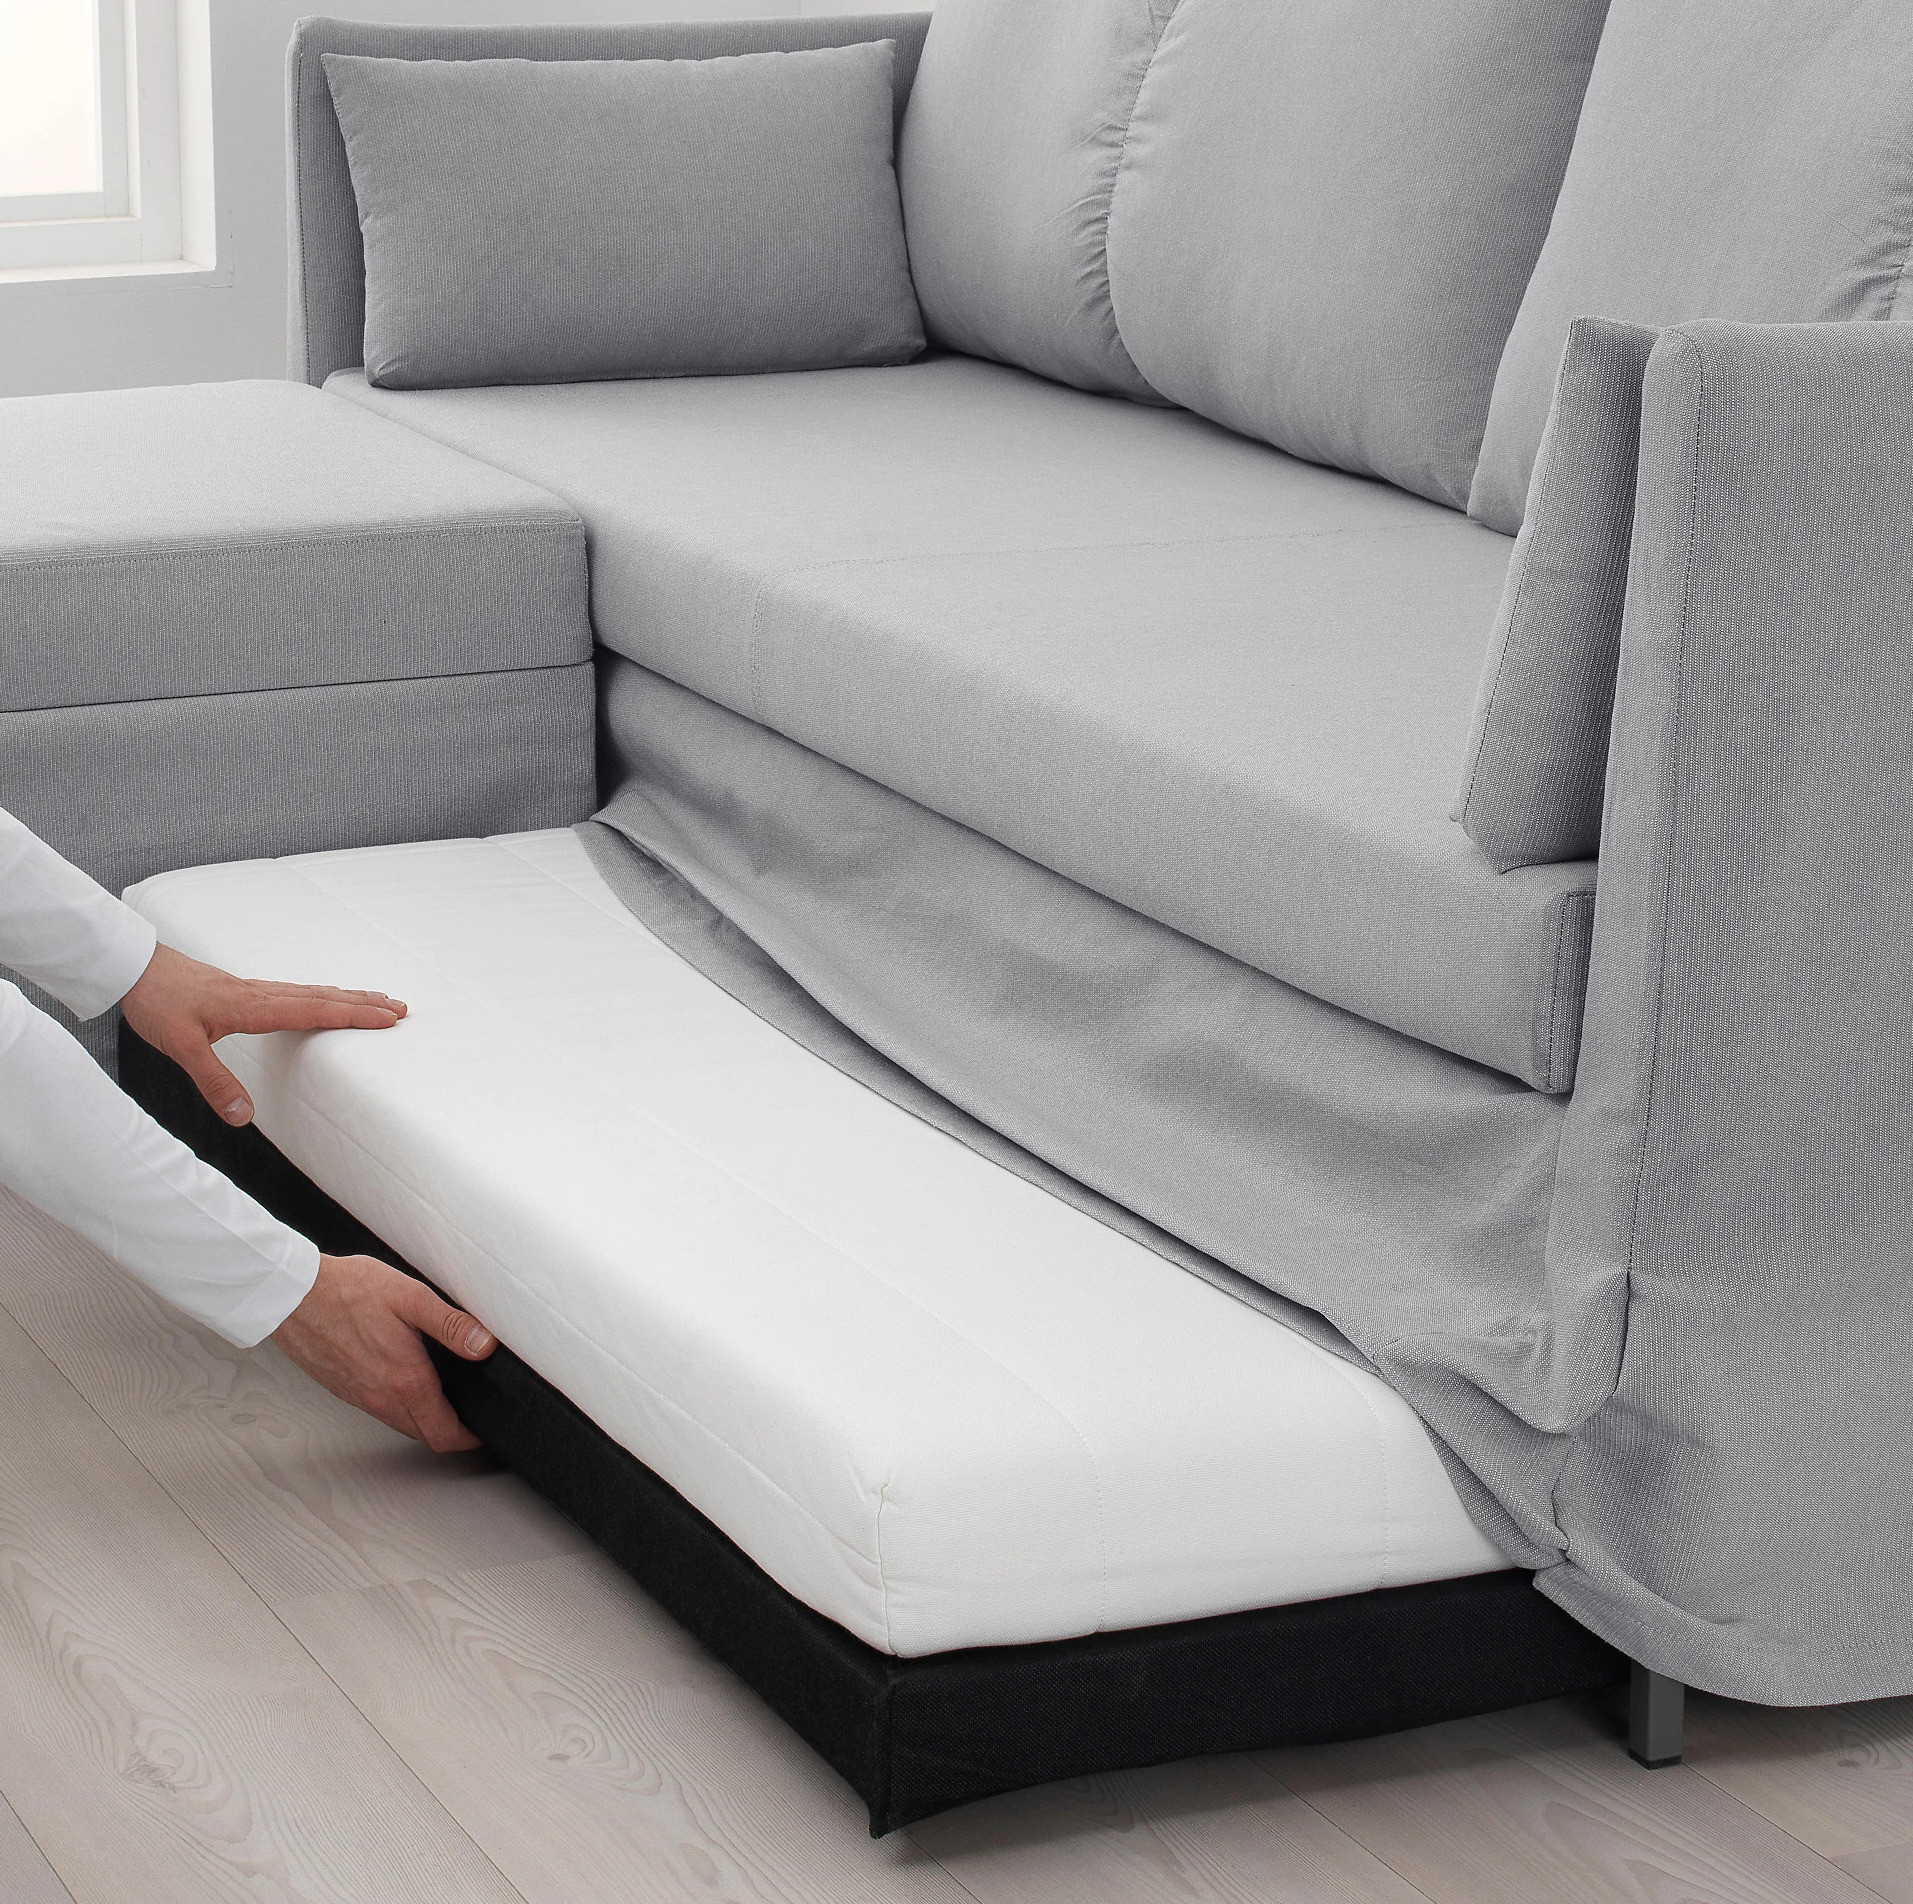 - The 17 Most Comfortable Sleeper Sofas, According To Reviewers